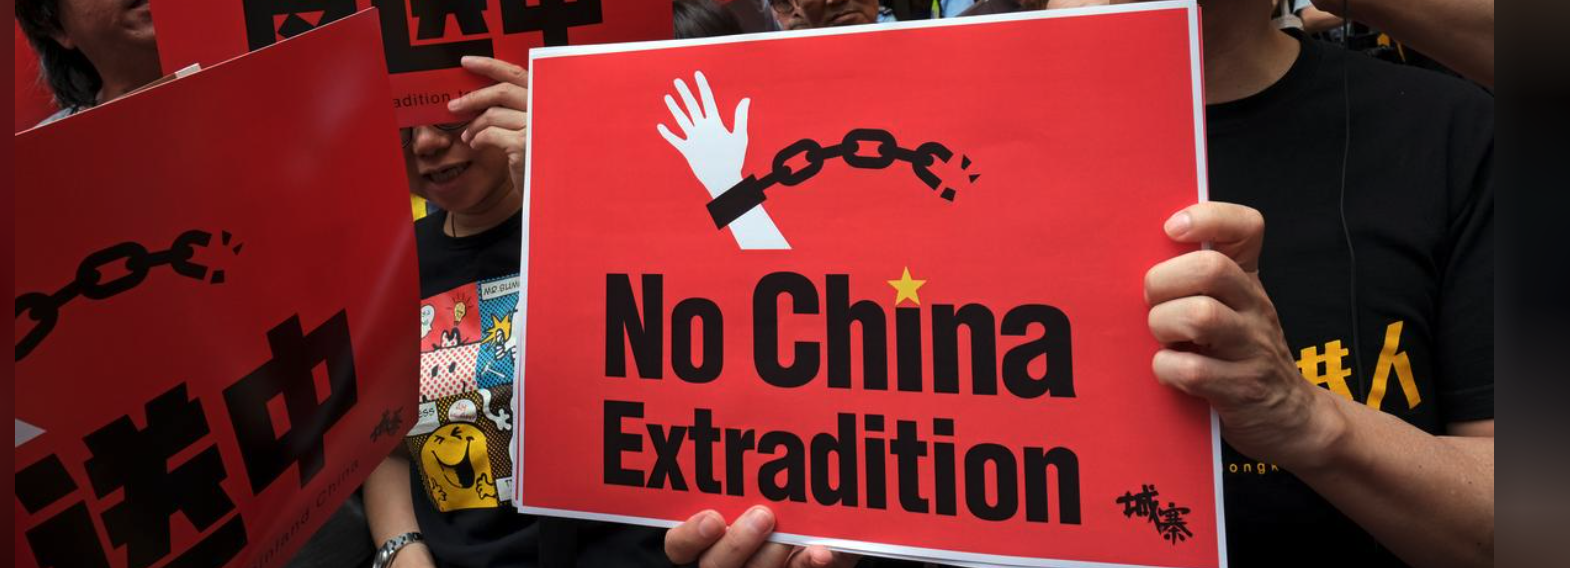 Tens of Thousands Protest New Extradition Rules in HK